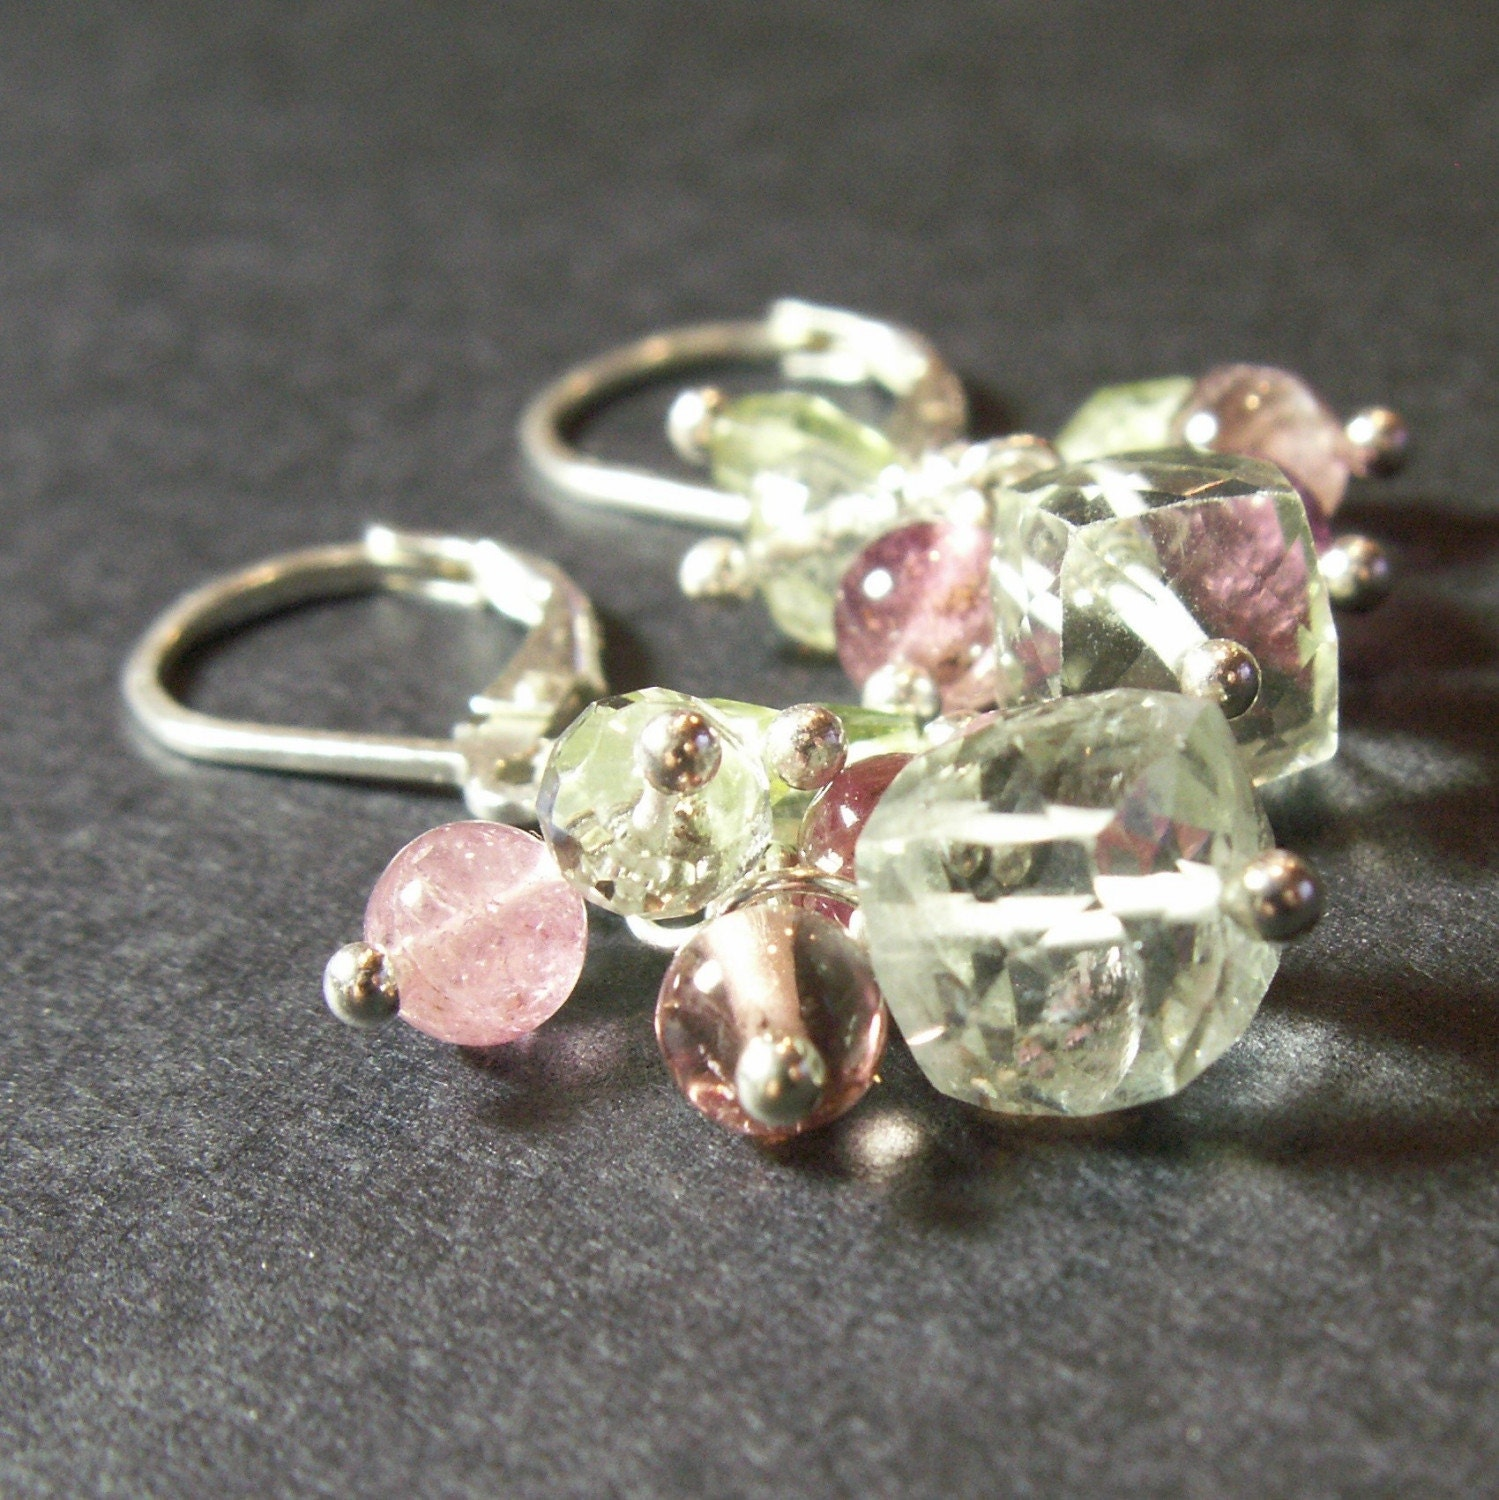 sterling silver earrings prasiolite green amethyst pink tourmaline